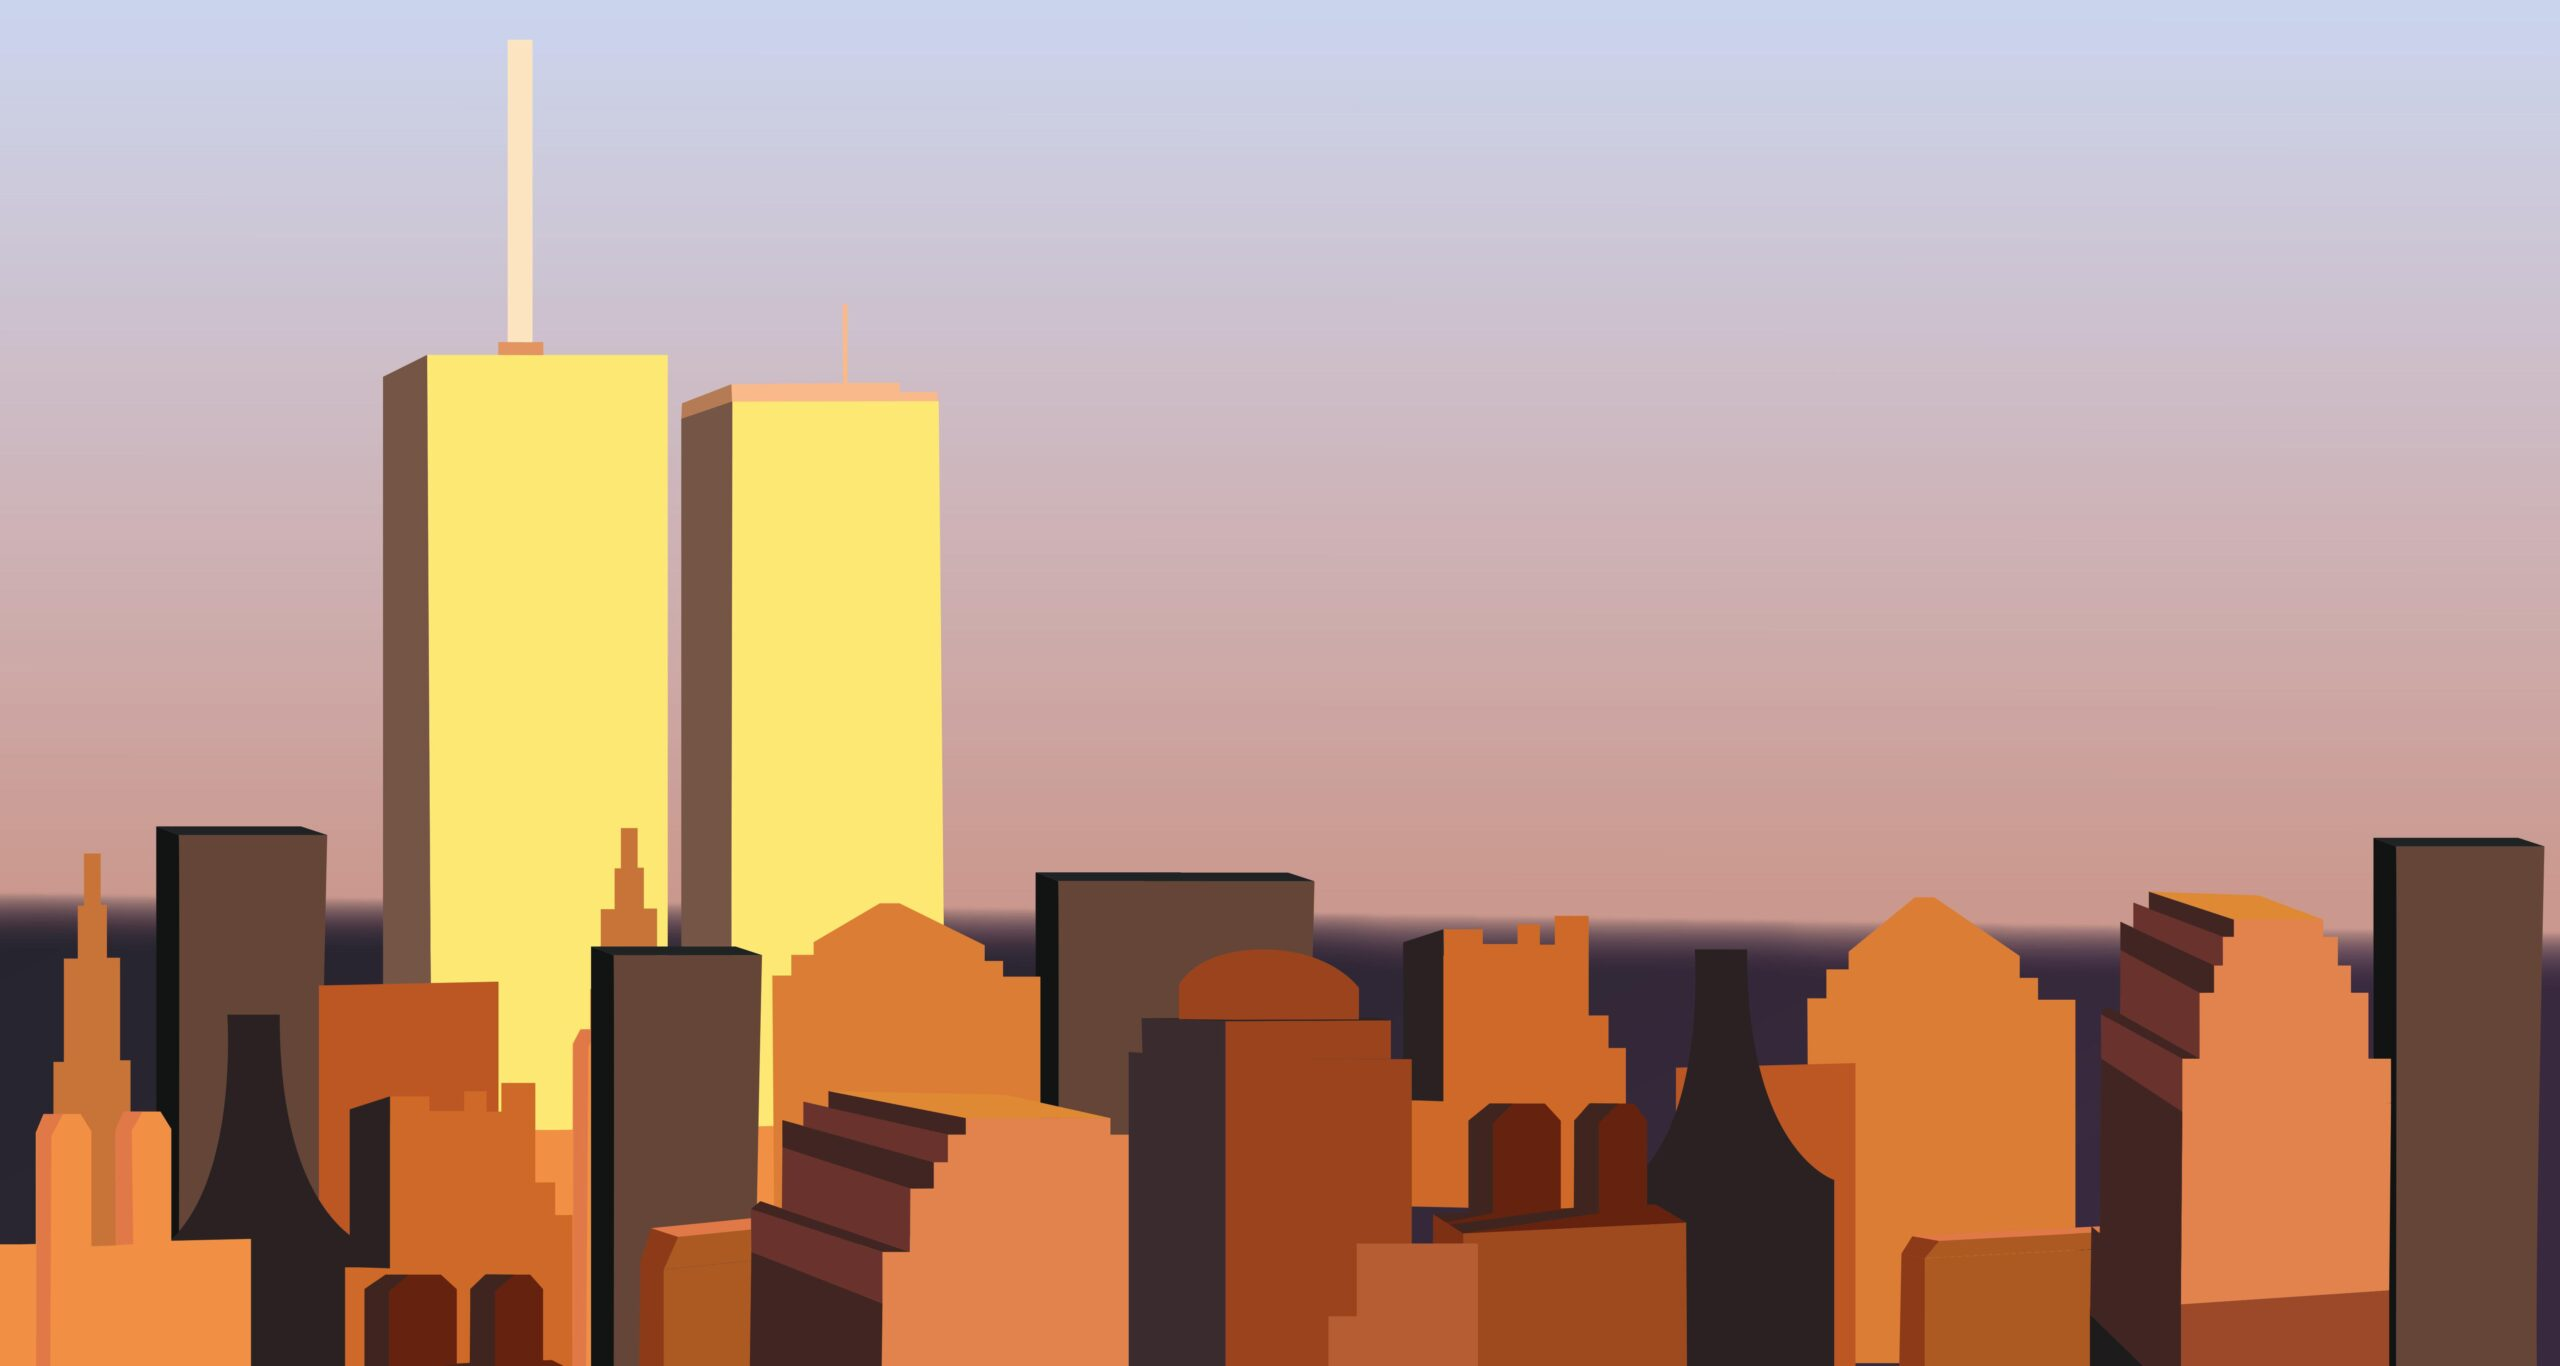 Graphic of the New York skyline, featuring the twin towers.